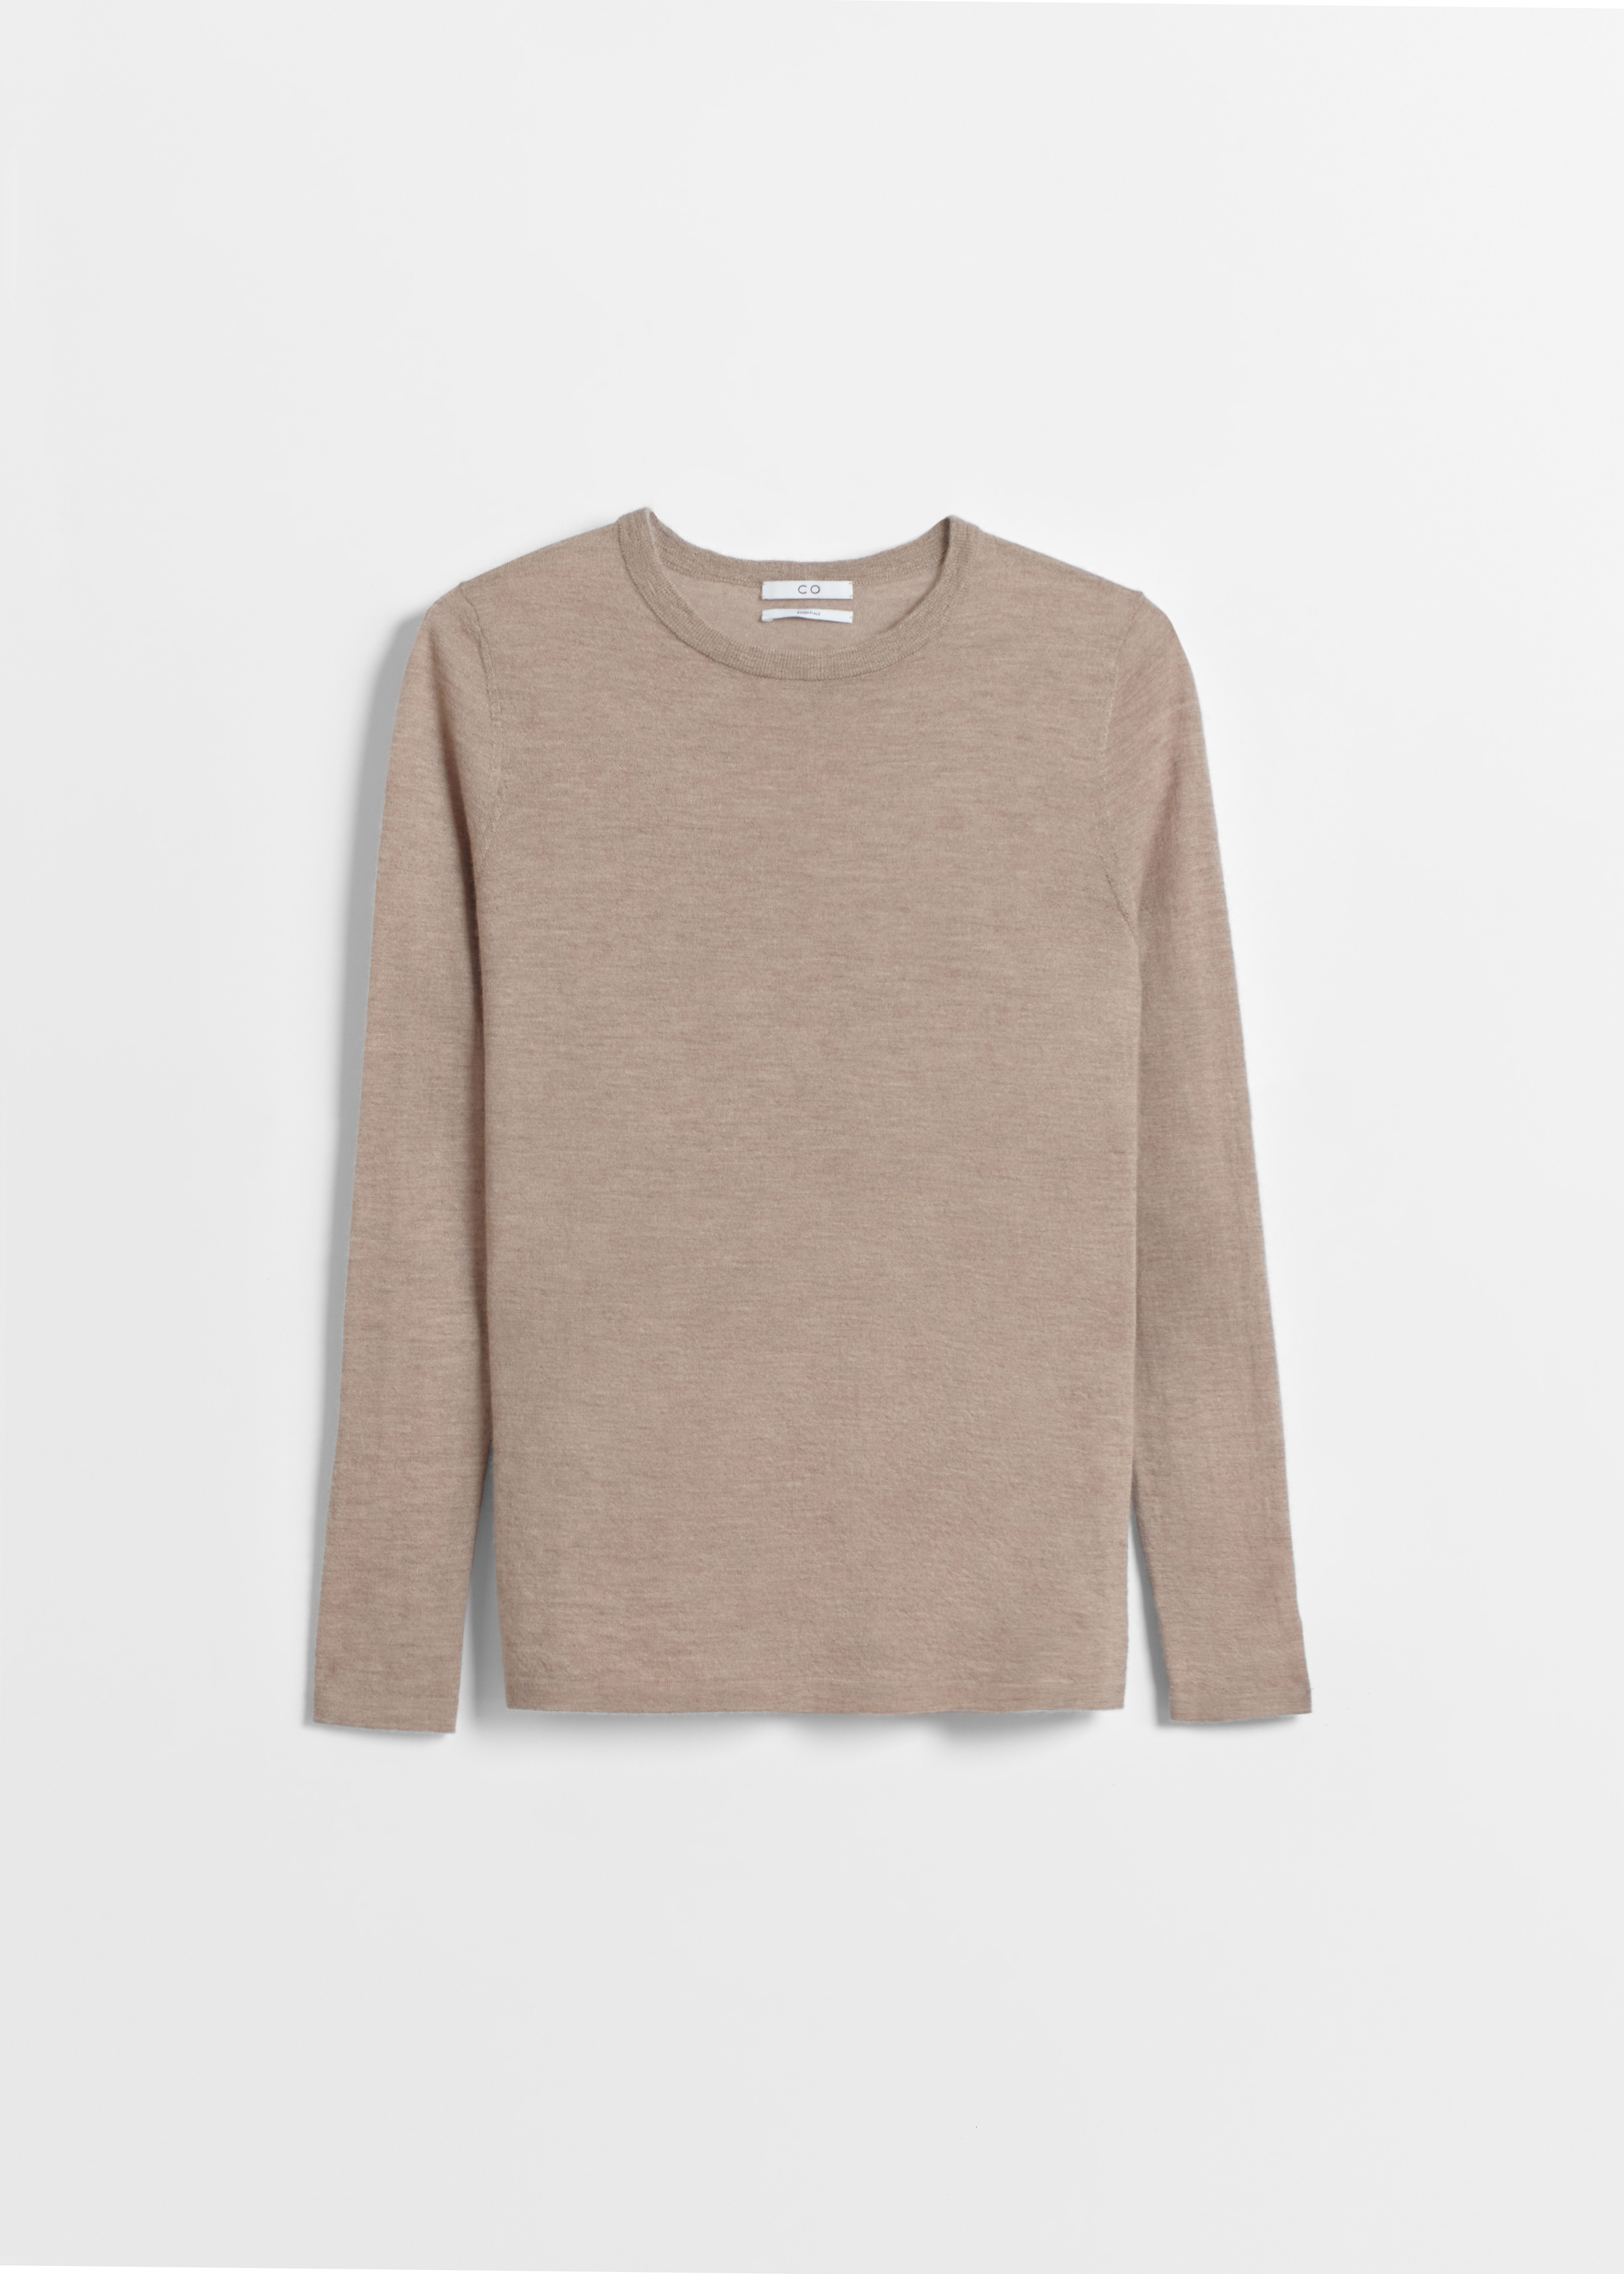 Long Sleeve Cashmere Crew Neck - Ivory in Taupe by Co Collections